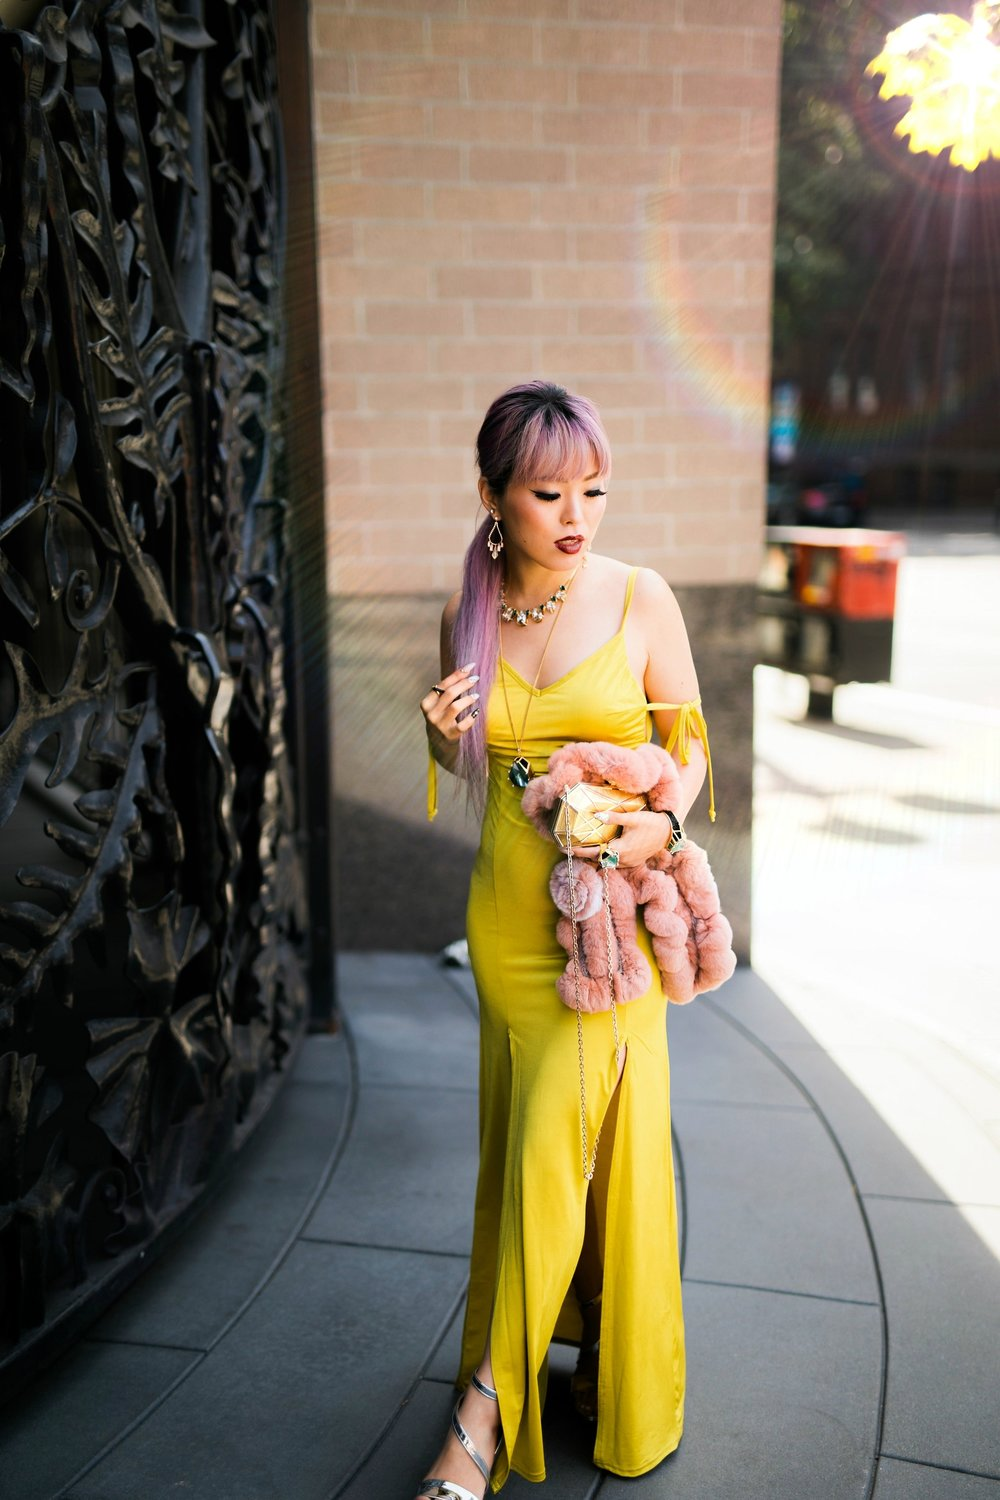 9-23-2017AikasLoveCloset-18-Full.jpgNasty Gal yellow satin Long Term Maxi Dress-Zara Silver heeled sandals-Swarovski Rose Gold-Tone Crystal Chandelier Earrings-Huge Ring, Multi-colored, Gold plating-Swarovski Rose Goldplated Crystaldust Cross Ring-Swarovski Pave Crystal Pendant Necklace-Gold Clutch-Pink faux fur scarf-pink hair-settle fashion style blogger-petite-japanese-aika's love closet 12